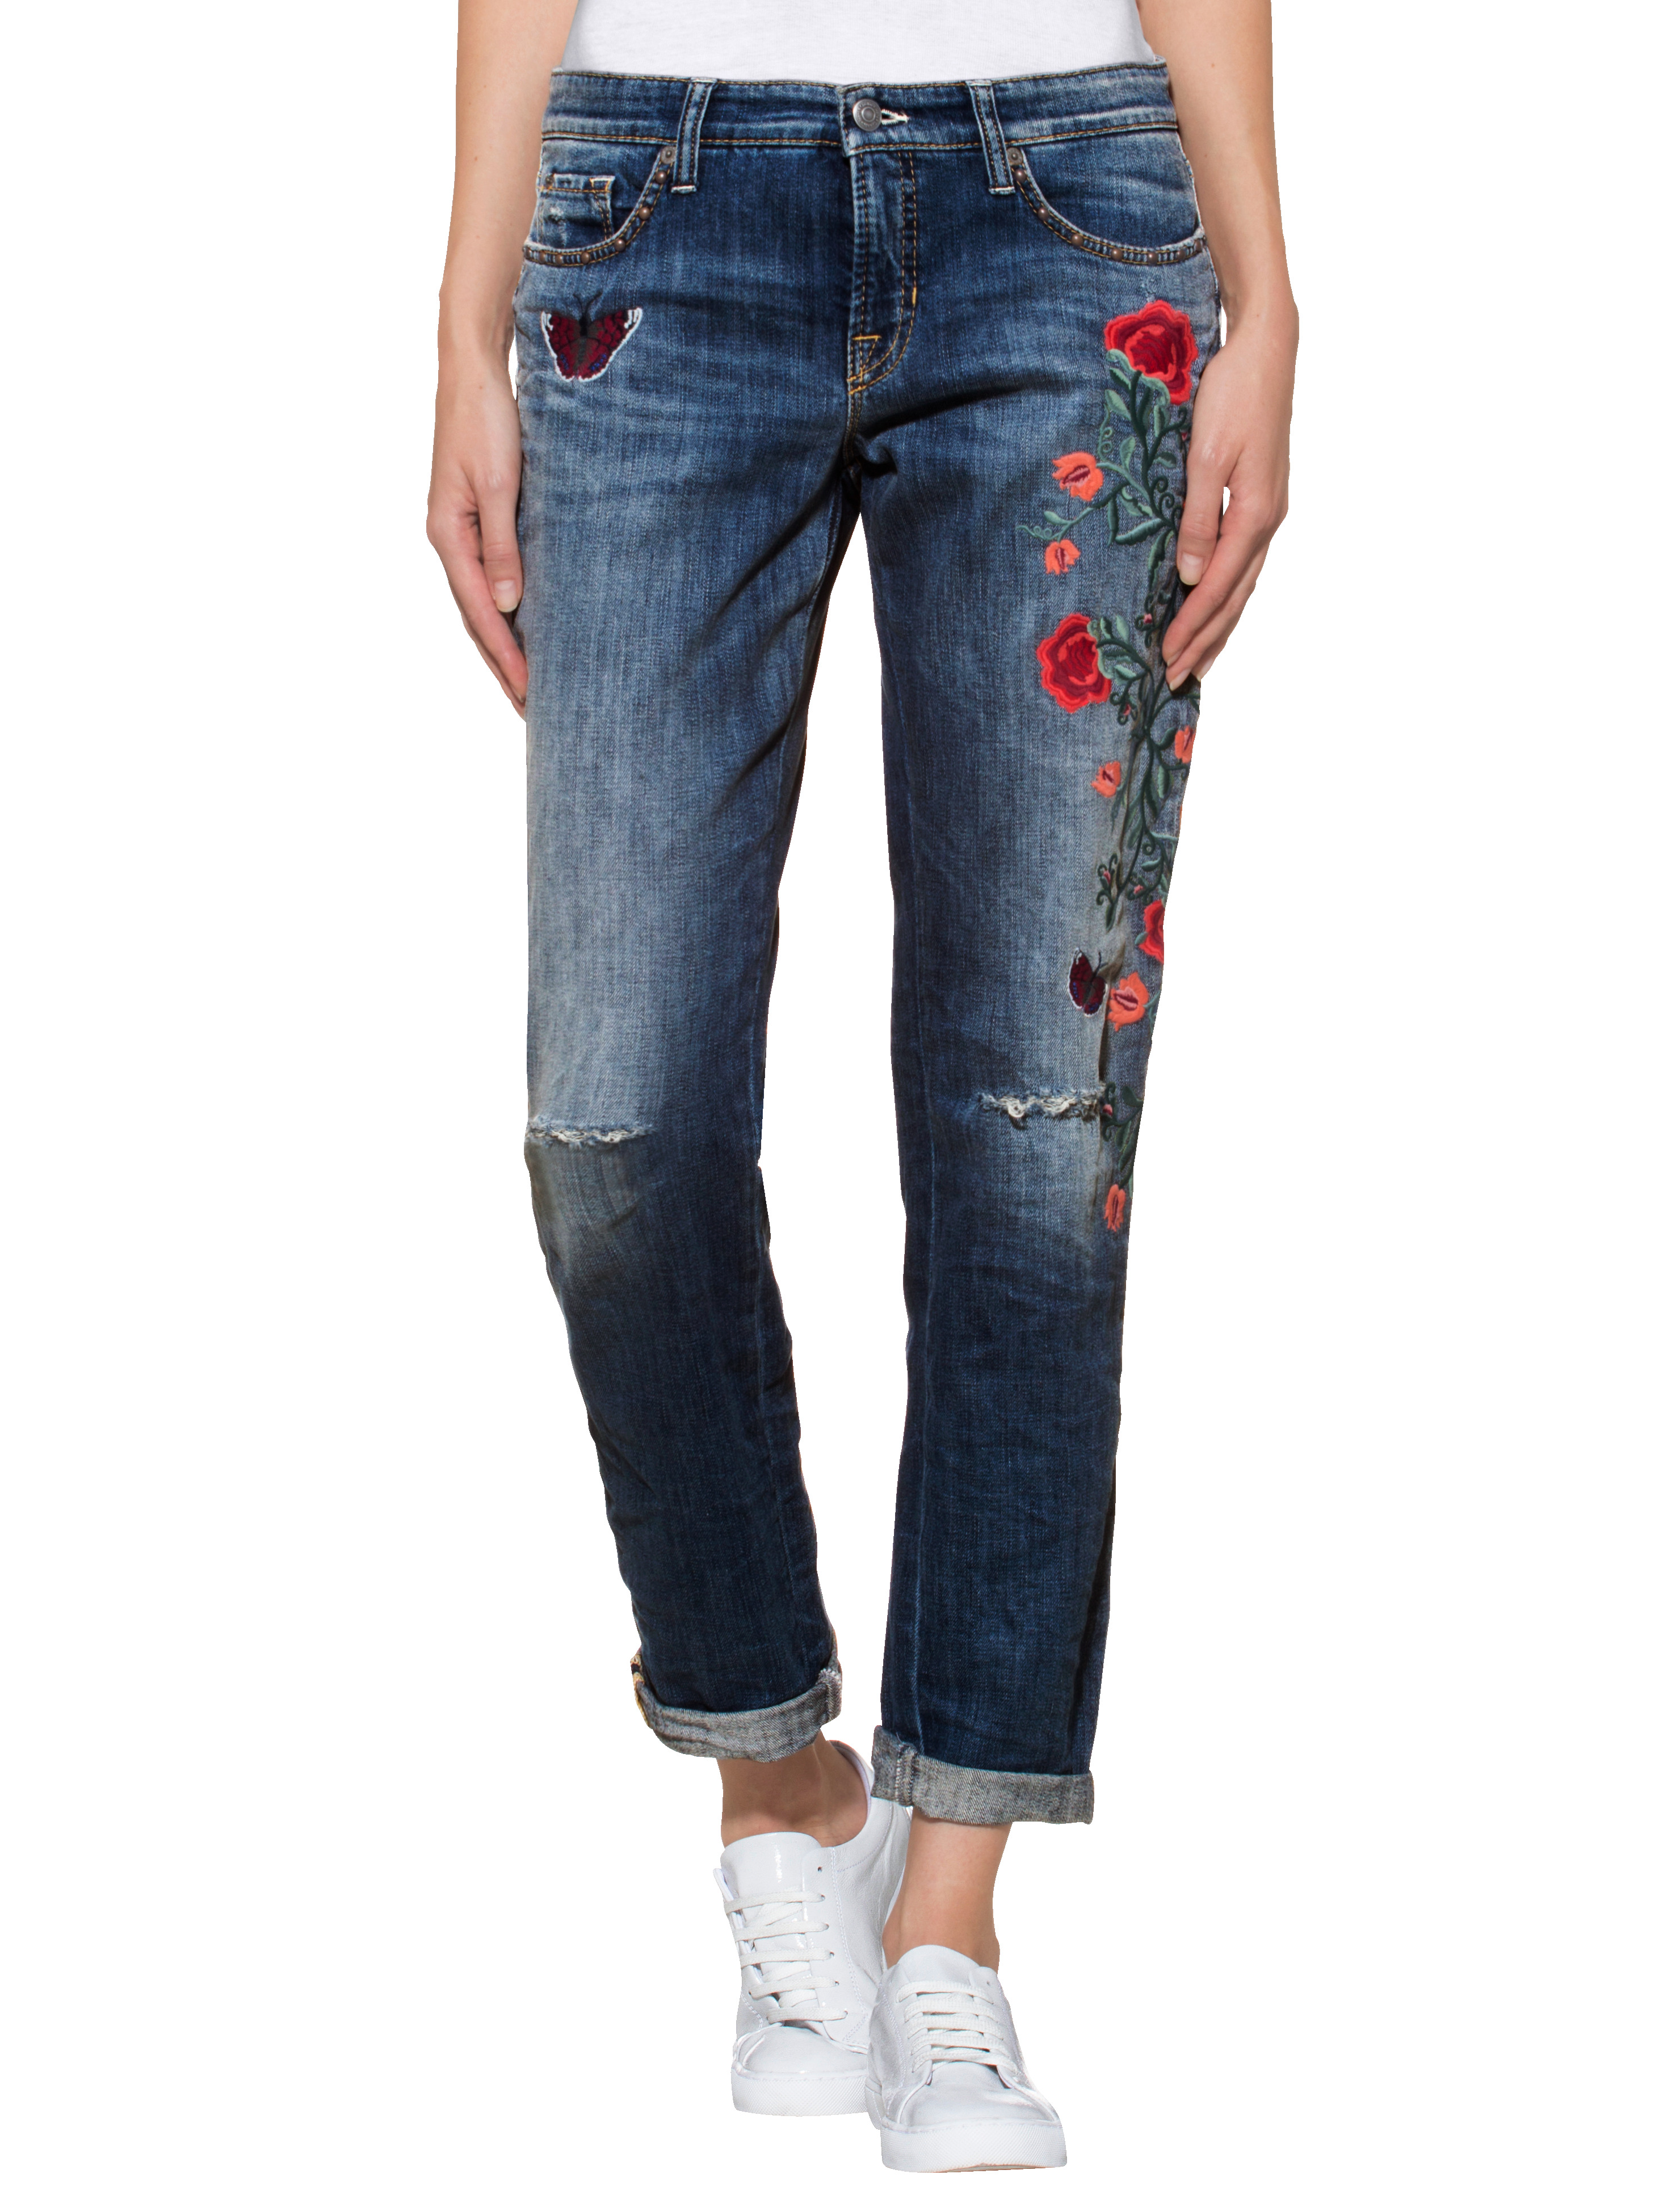 Cambio Jeans: Classic, modern or playful